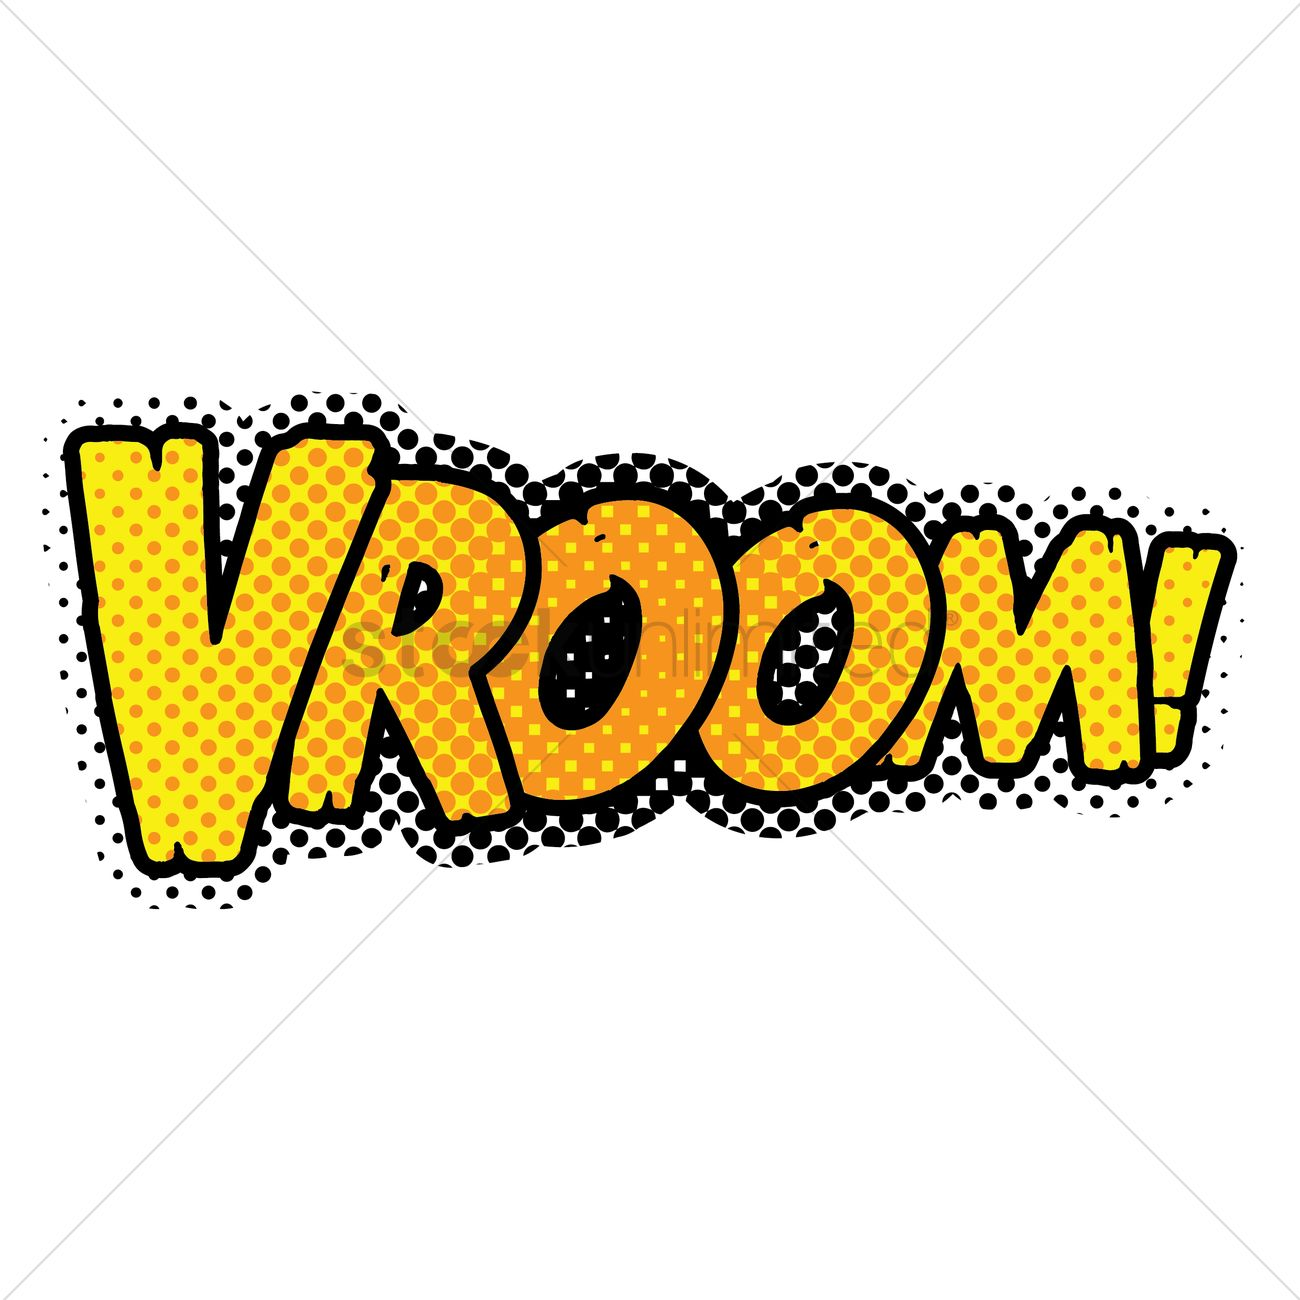 Vroom vroom sign clipart free clip art transparent download Vroom text with comic effect Vector Image - 1823063 ... clip art transparent download